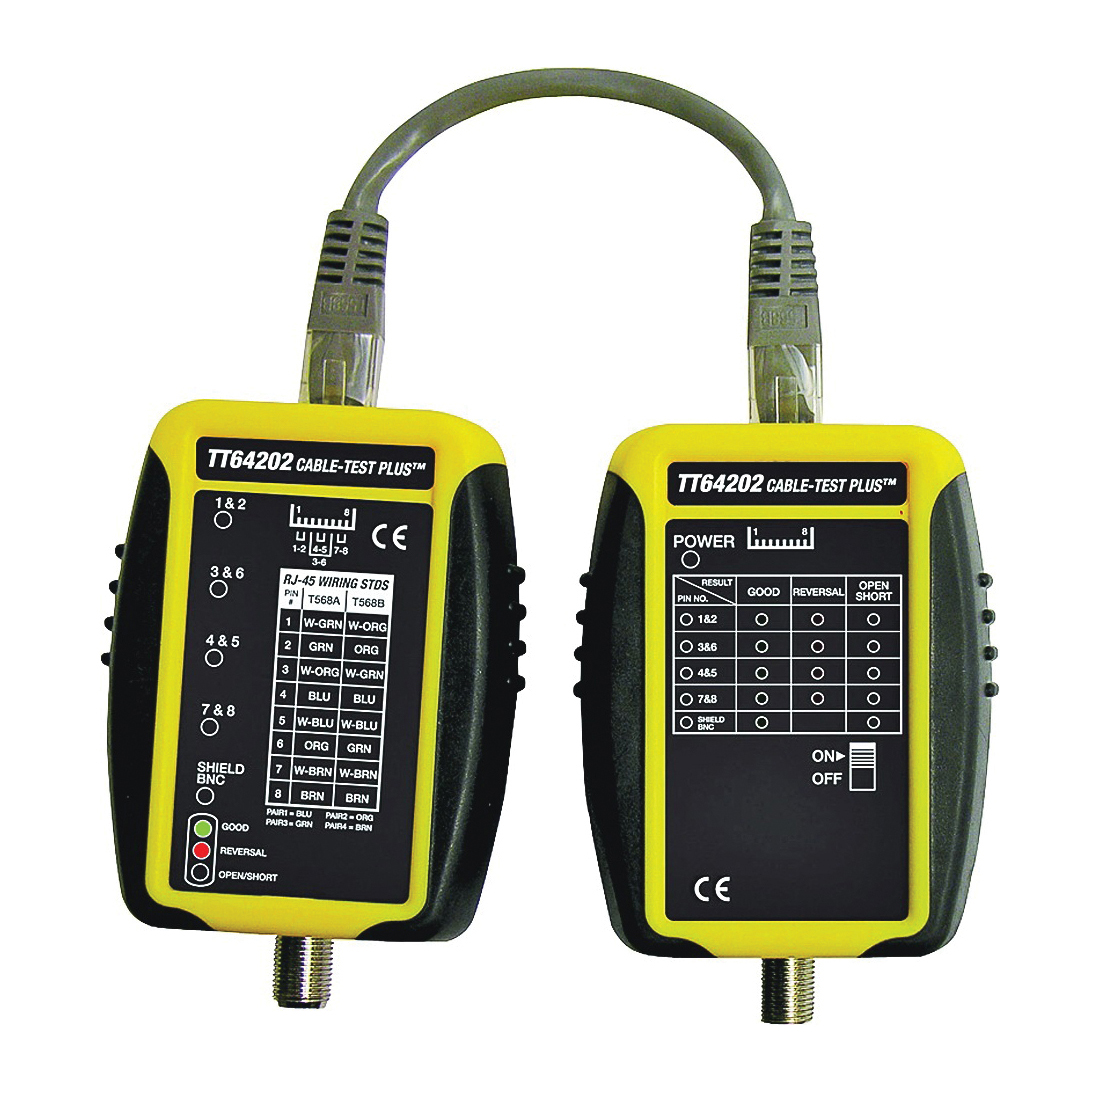 Picture of GB Cable-Test TT64202 Cable Tester, Black/Yellow